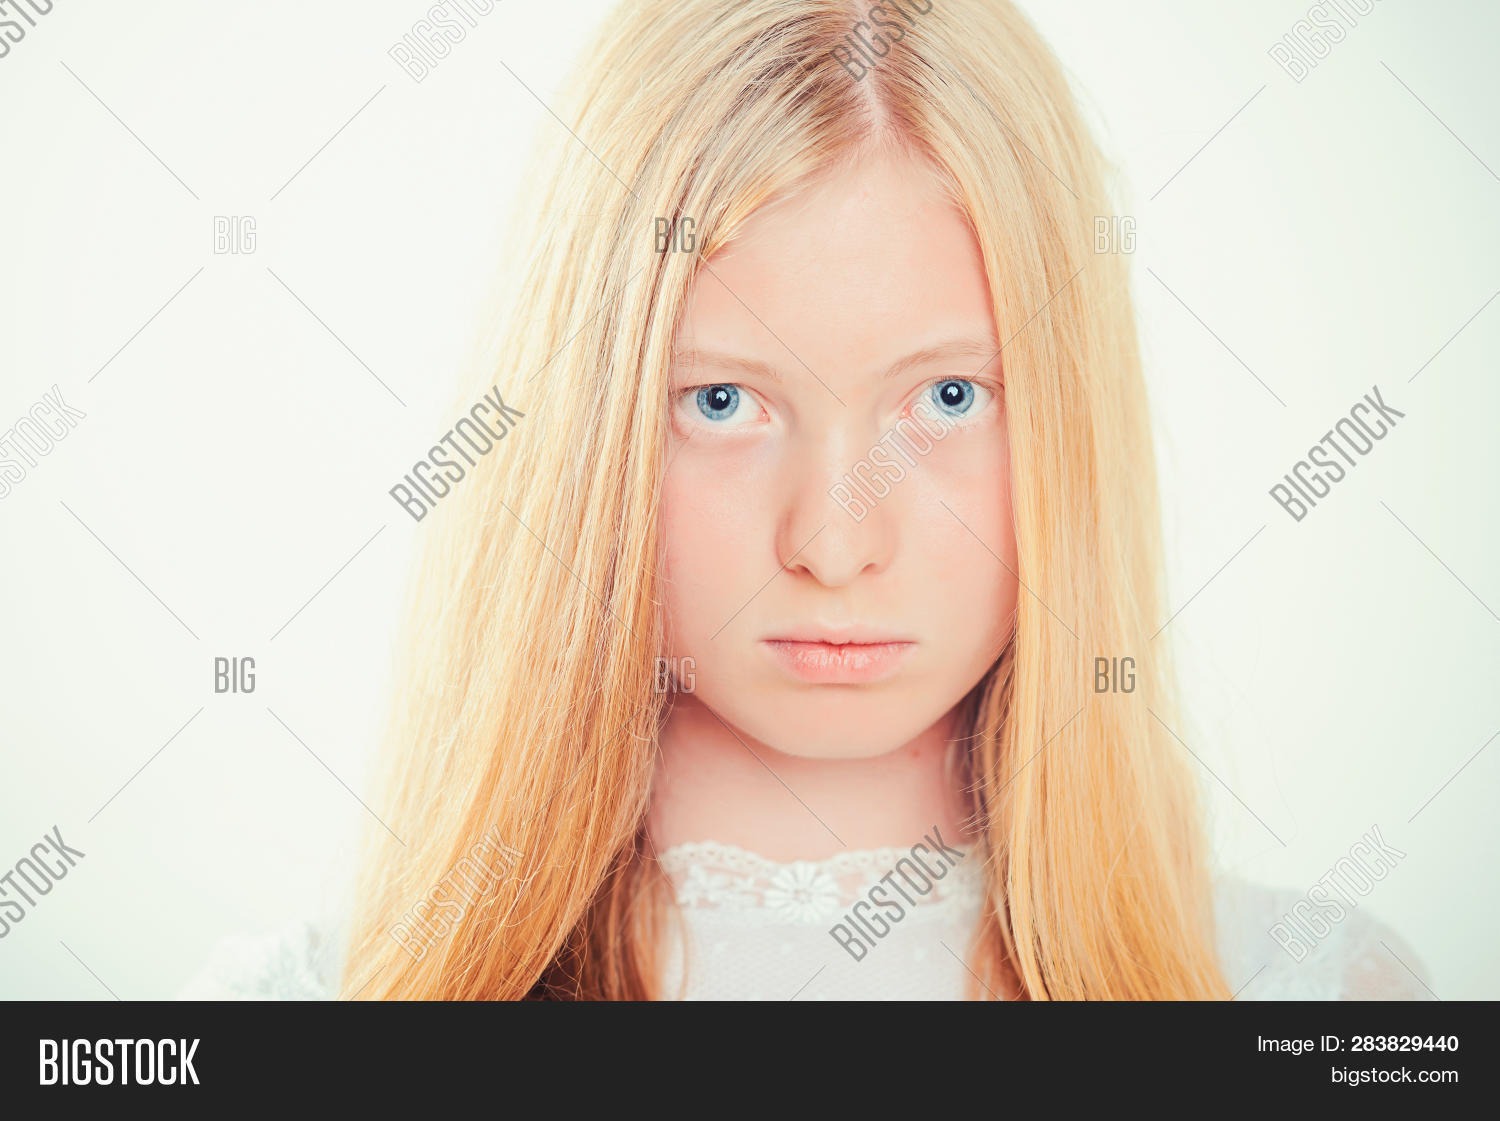 2b8f6d61e74 Albino Girl With Blue Eyes And White Skin. Woman With Natural Beauty Look  And No